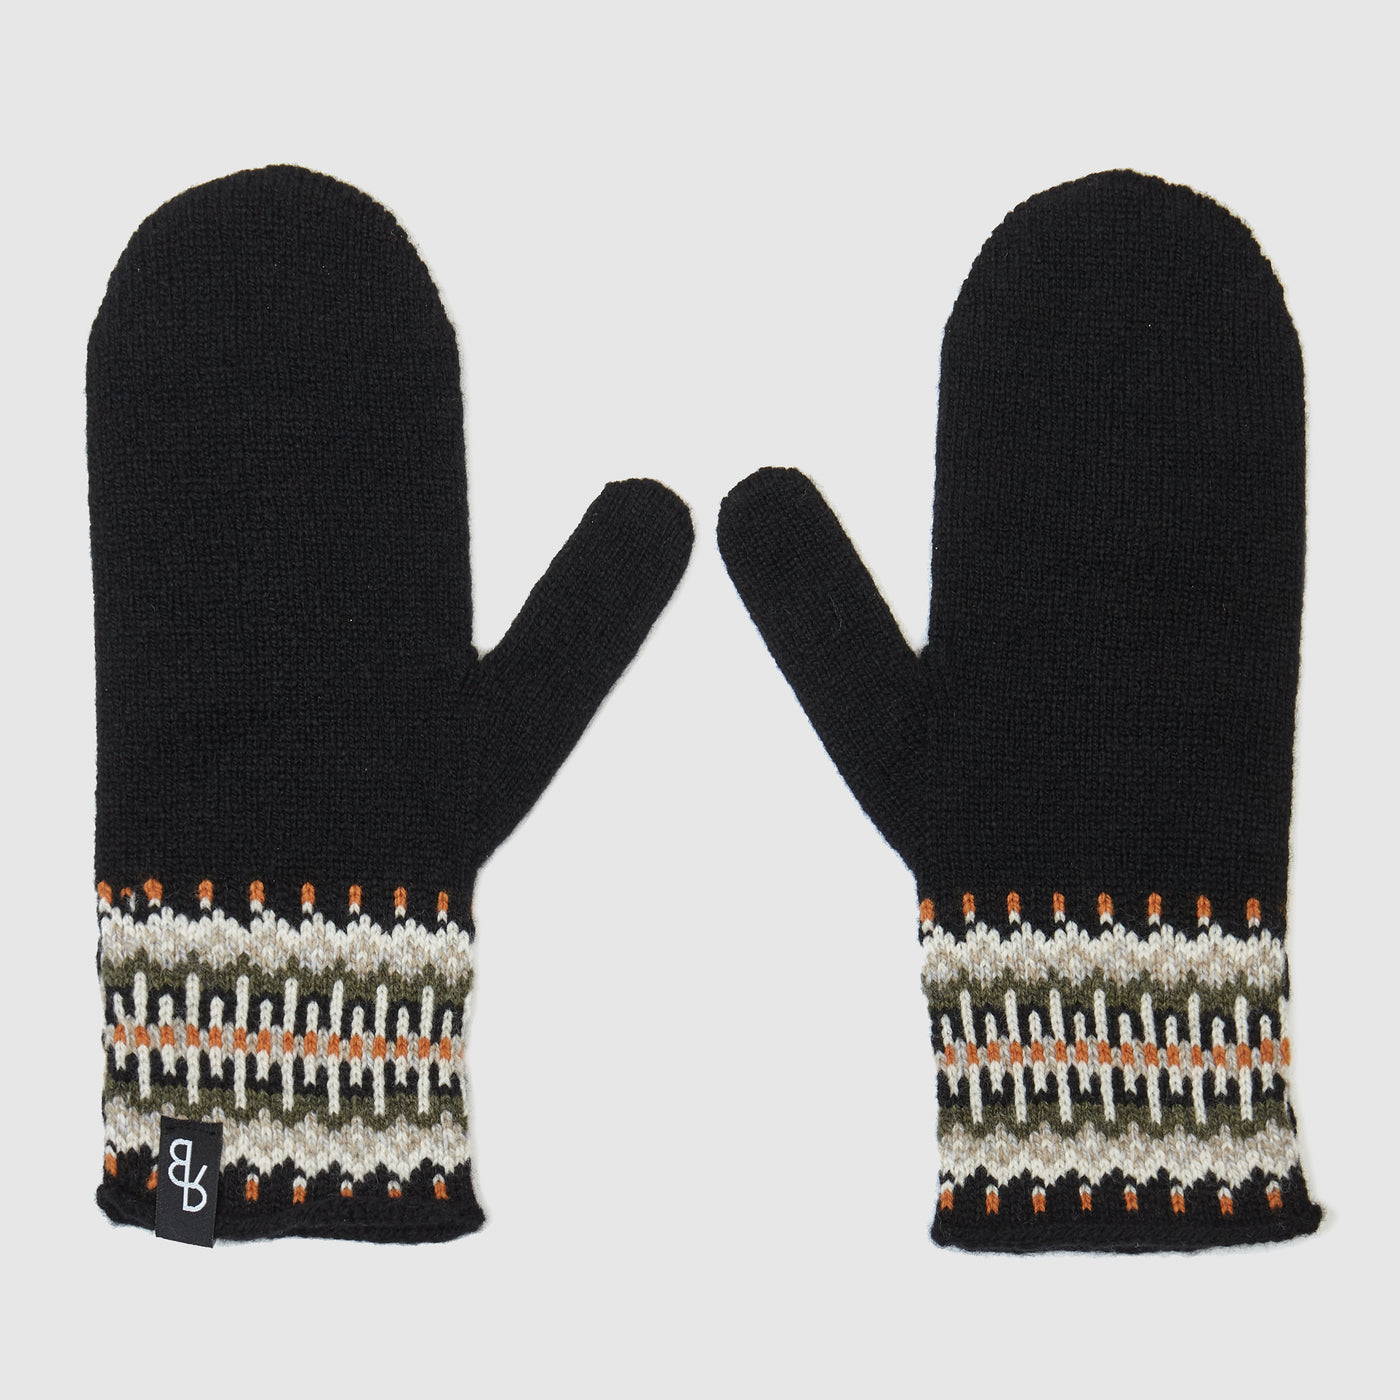 Fair isle lambs wool mittens designed and made in UK | Black & Orange - Sustainable British knitwear label